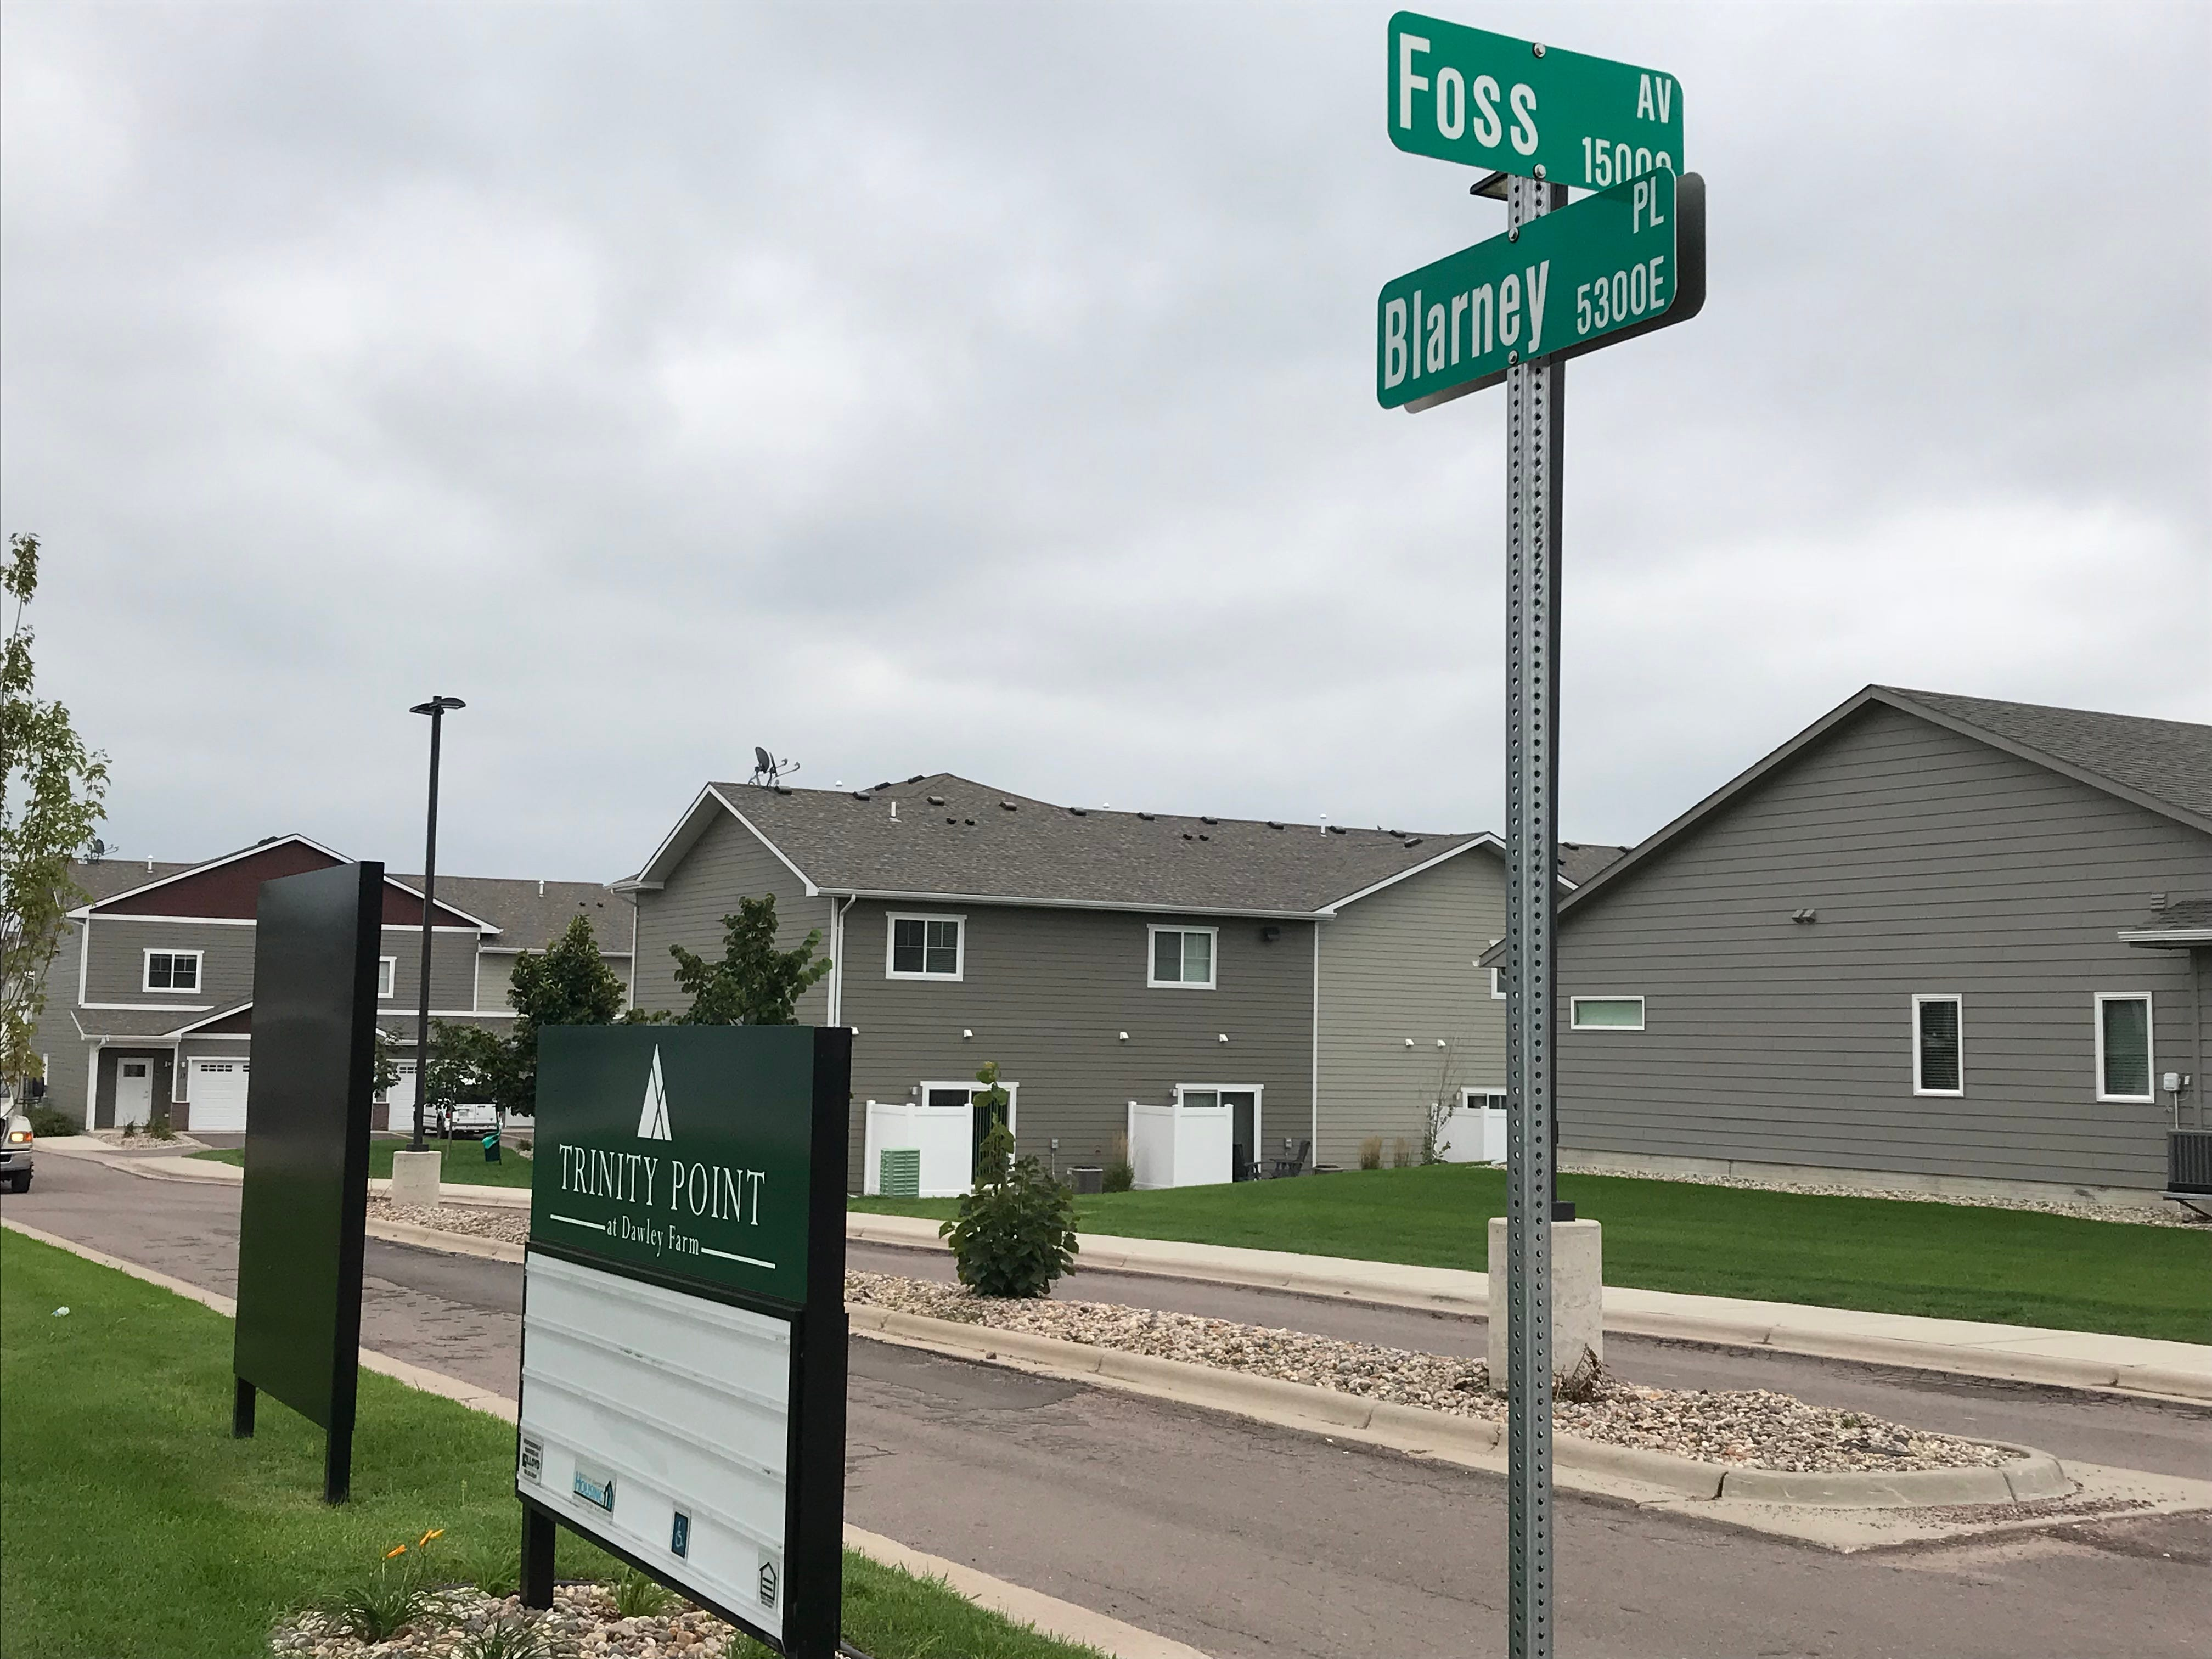 If you see a lot of Irish names of developments and street signs, you're not full of blarney. It's a signature of developer Lloyd Companies, honoring its founders' Irish roots, but other developers get into the Irish moniker game too.